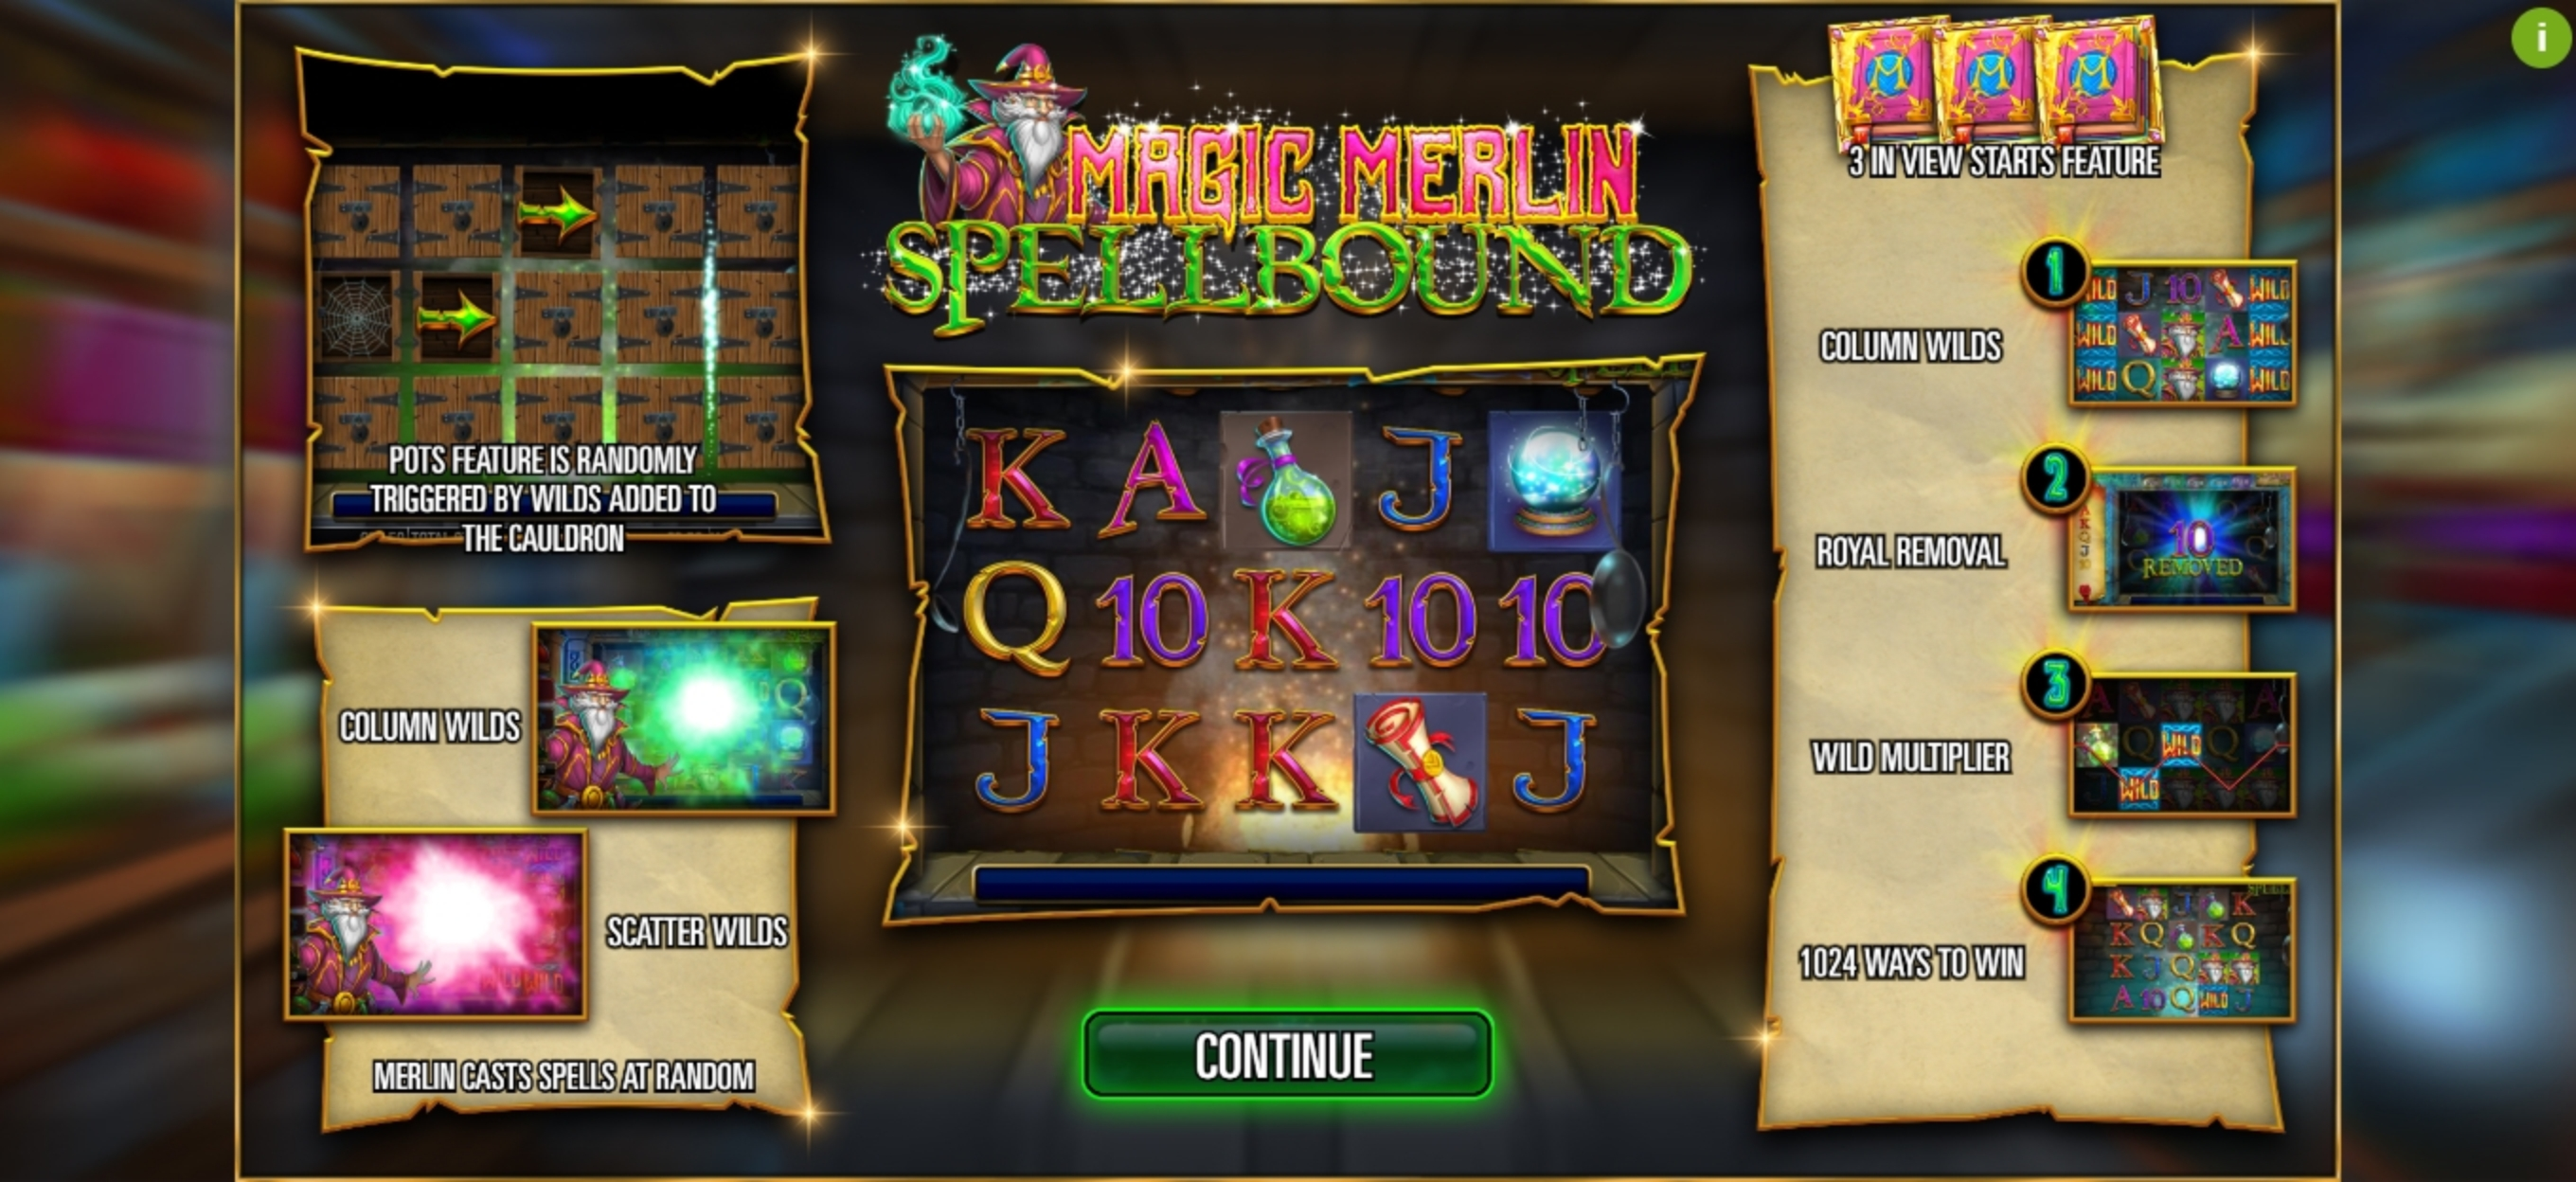 Play Magic Merlin: Spellbound Free Casino Slot Game by Storm Gaming